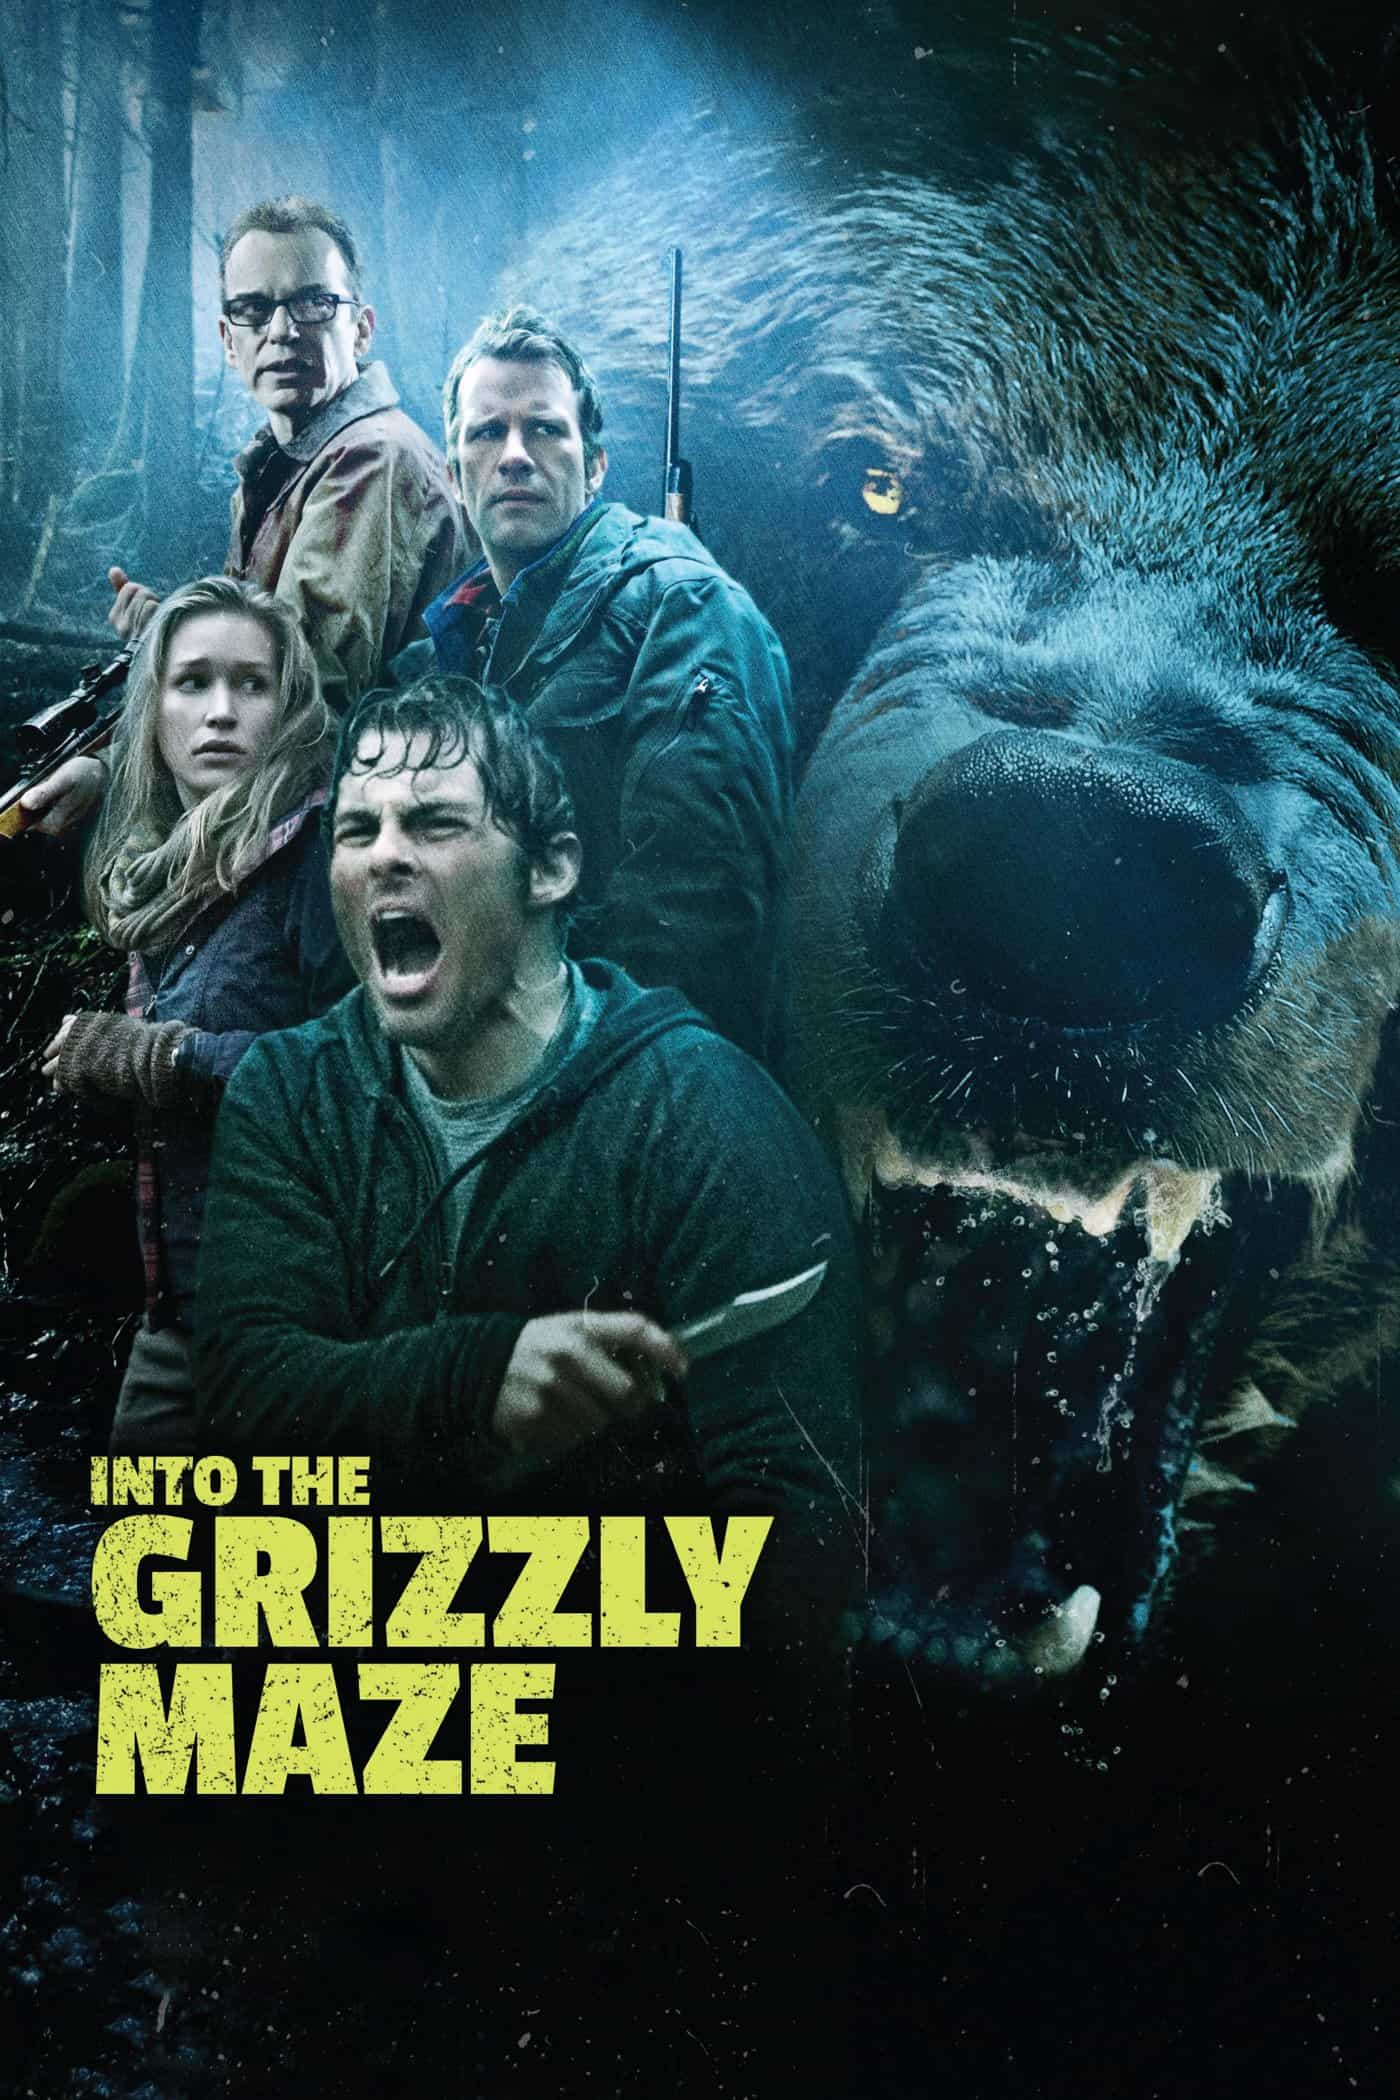 Into the Grizzly Maze, 2015